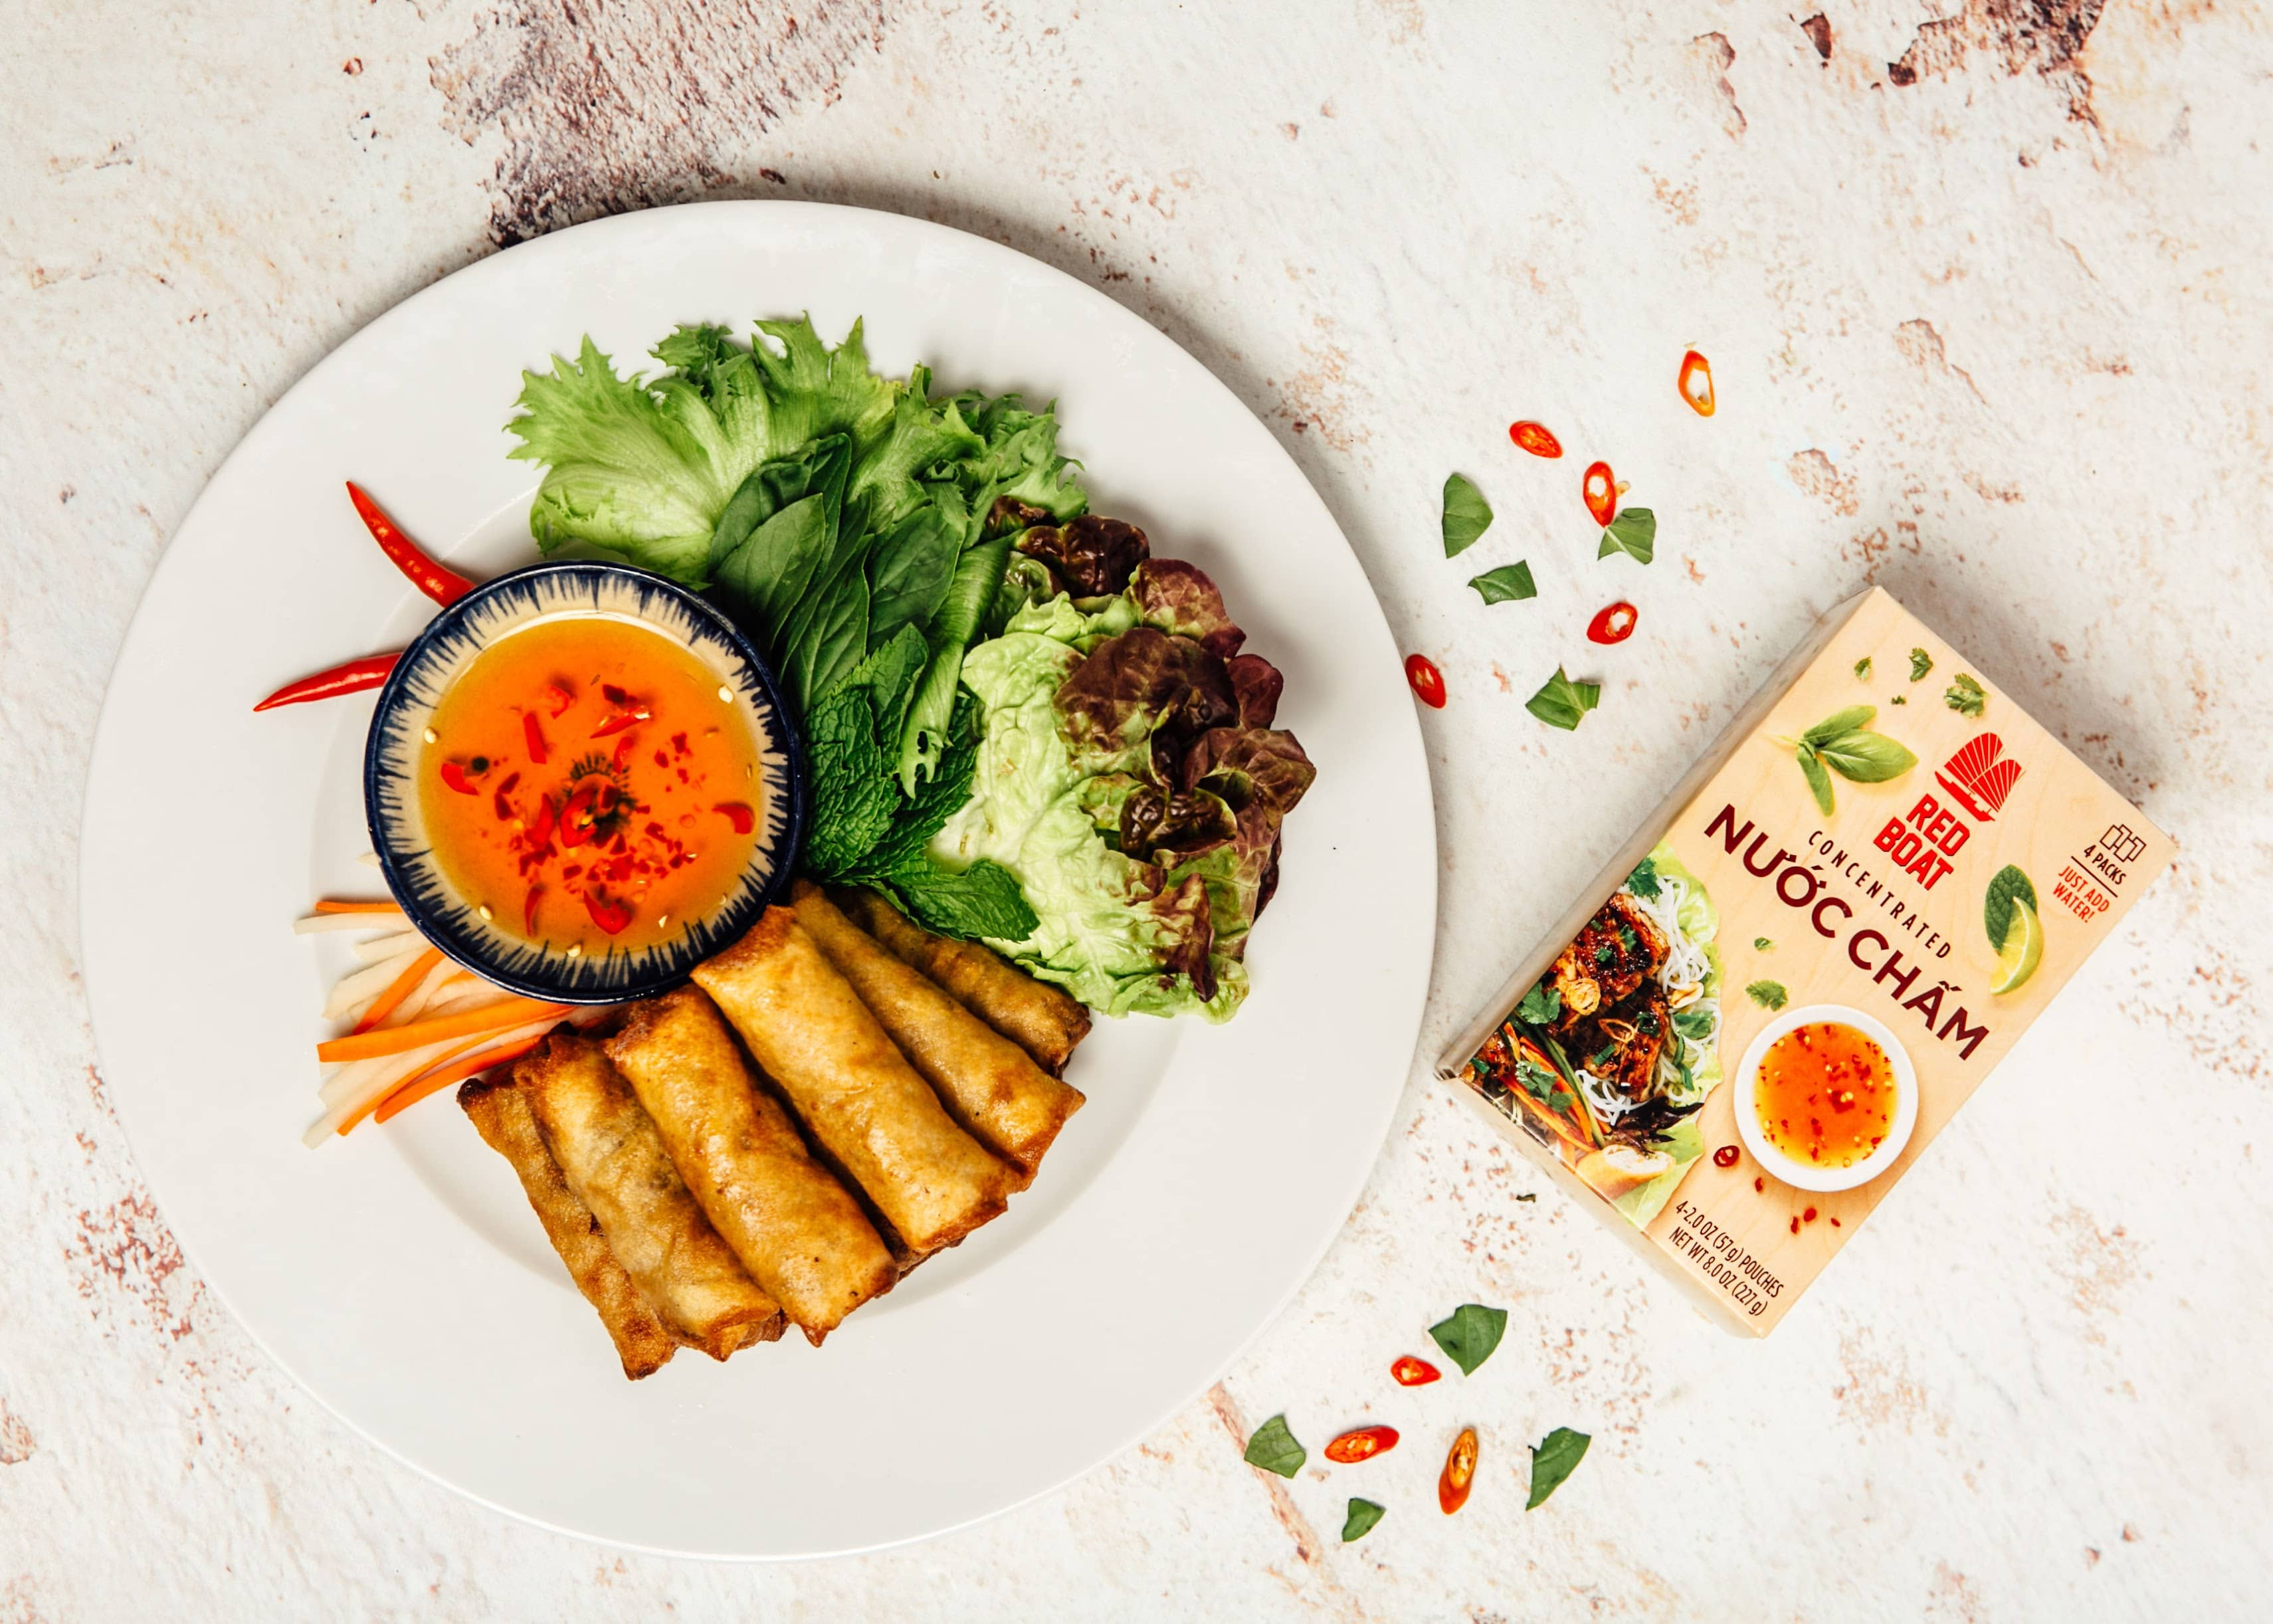 Red Boat Fish Sauce Launches First-Ever Instant Nuoc Cham